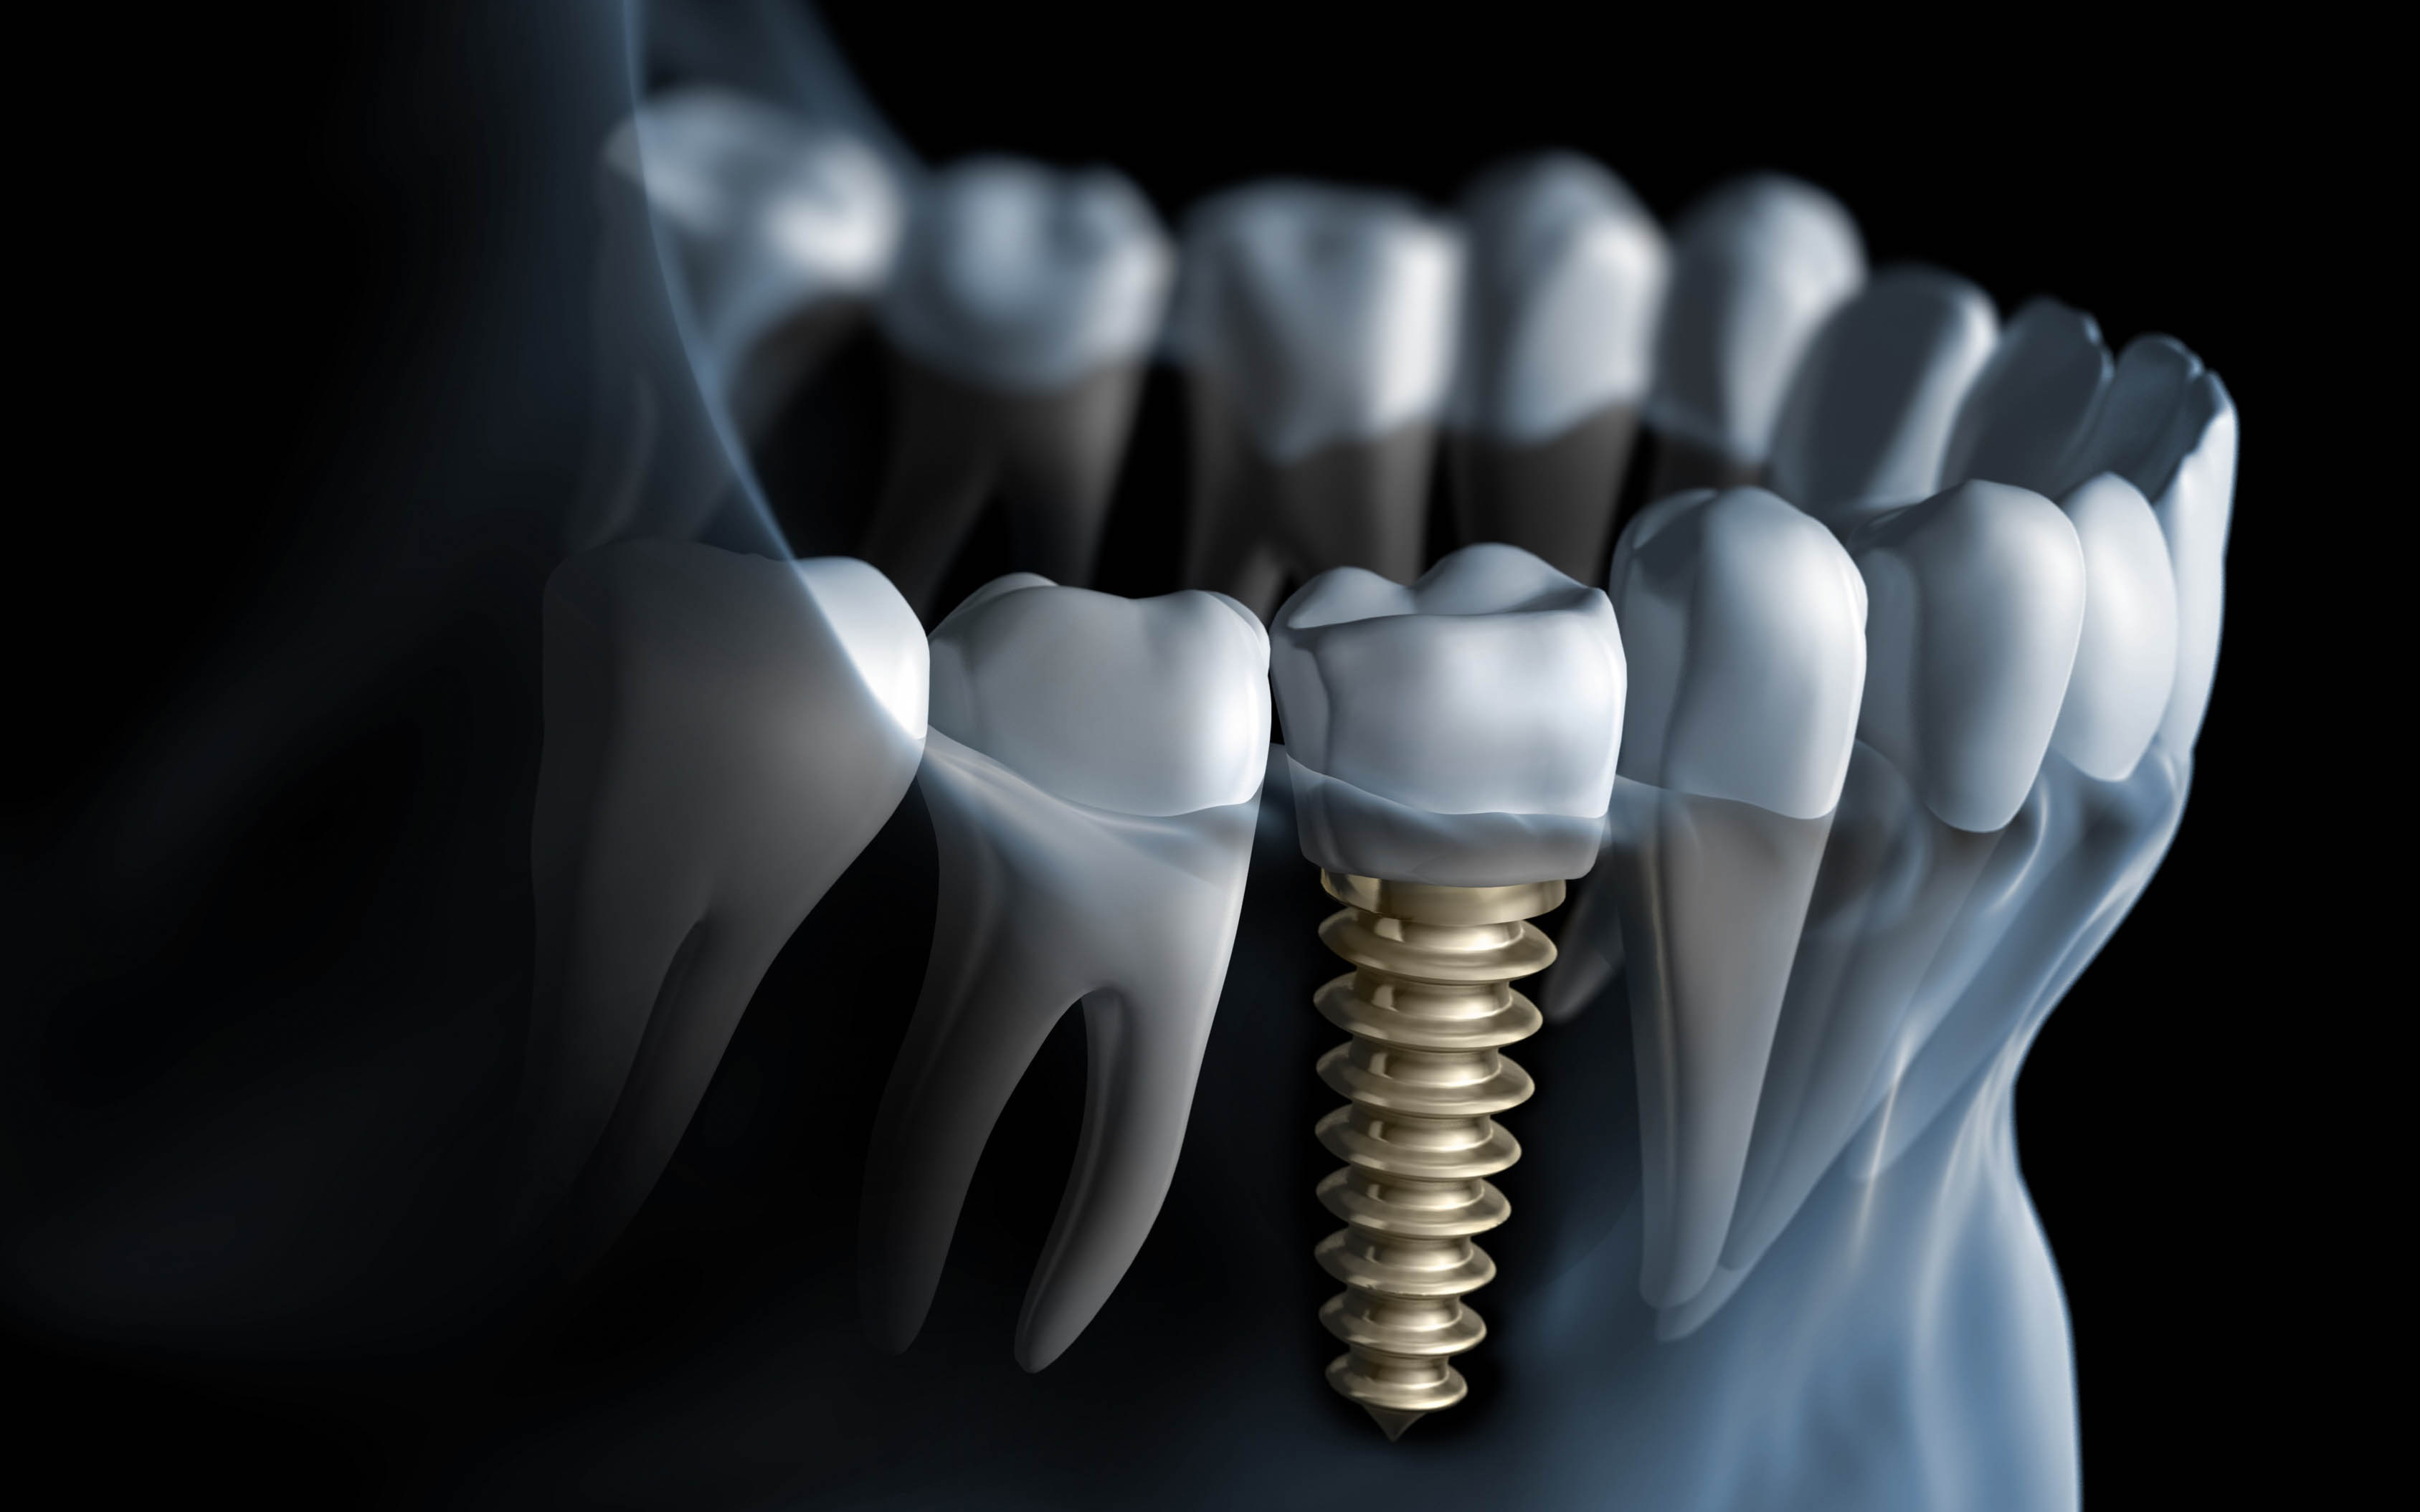 18-6-13-214234dental-implants